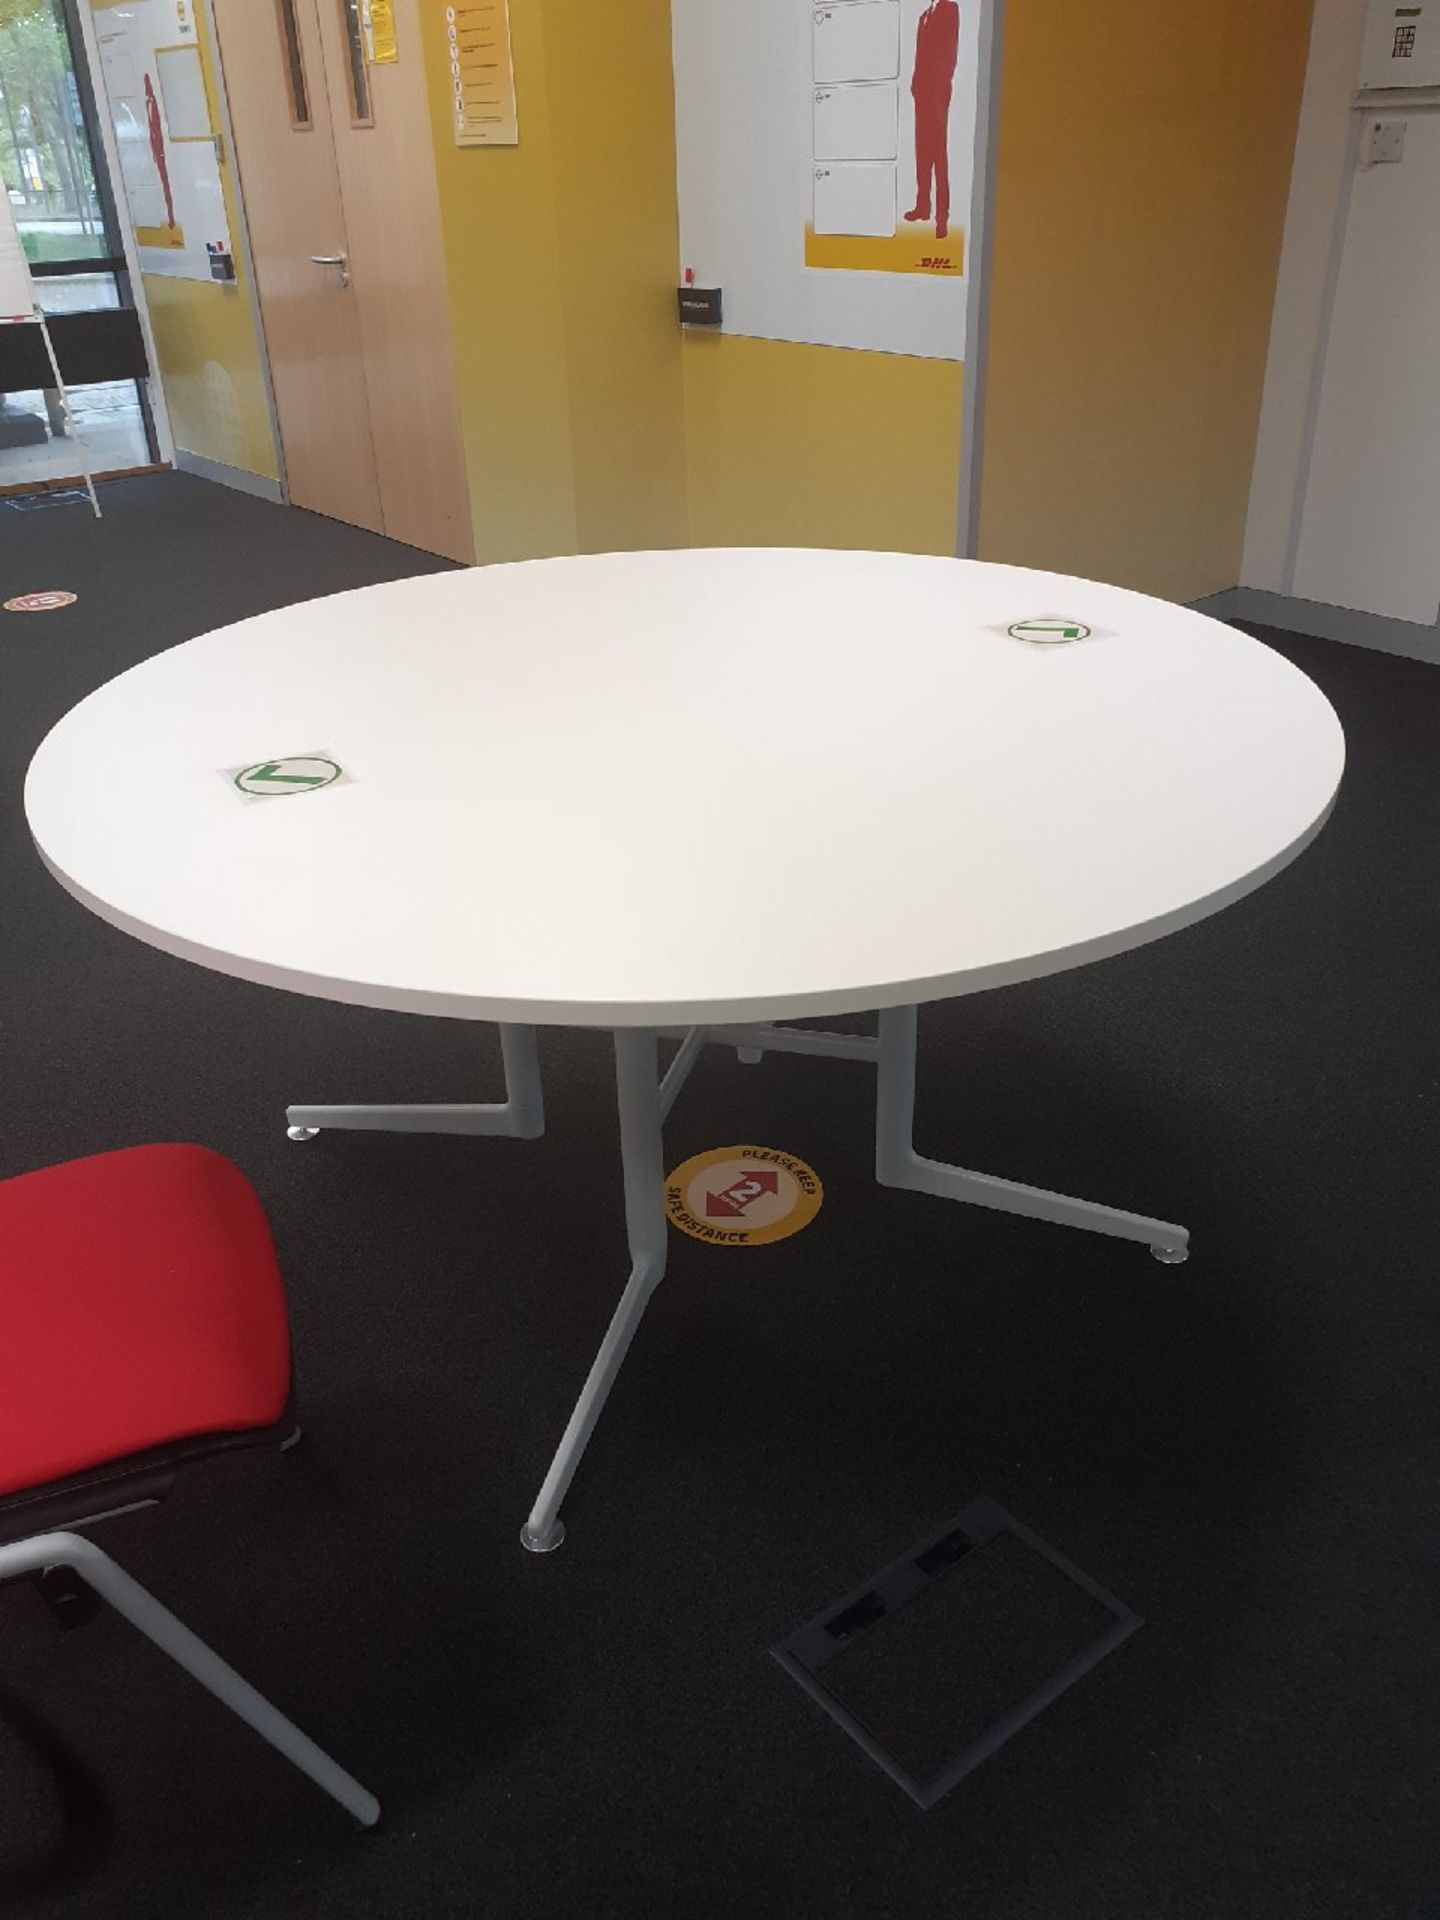 5 x Round Tables ideal for canteens/meeting rooms.